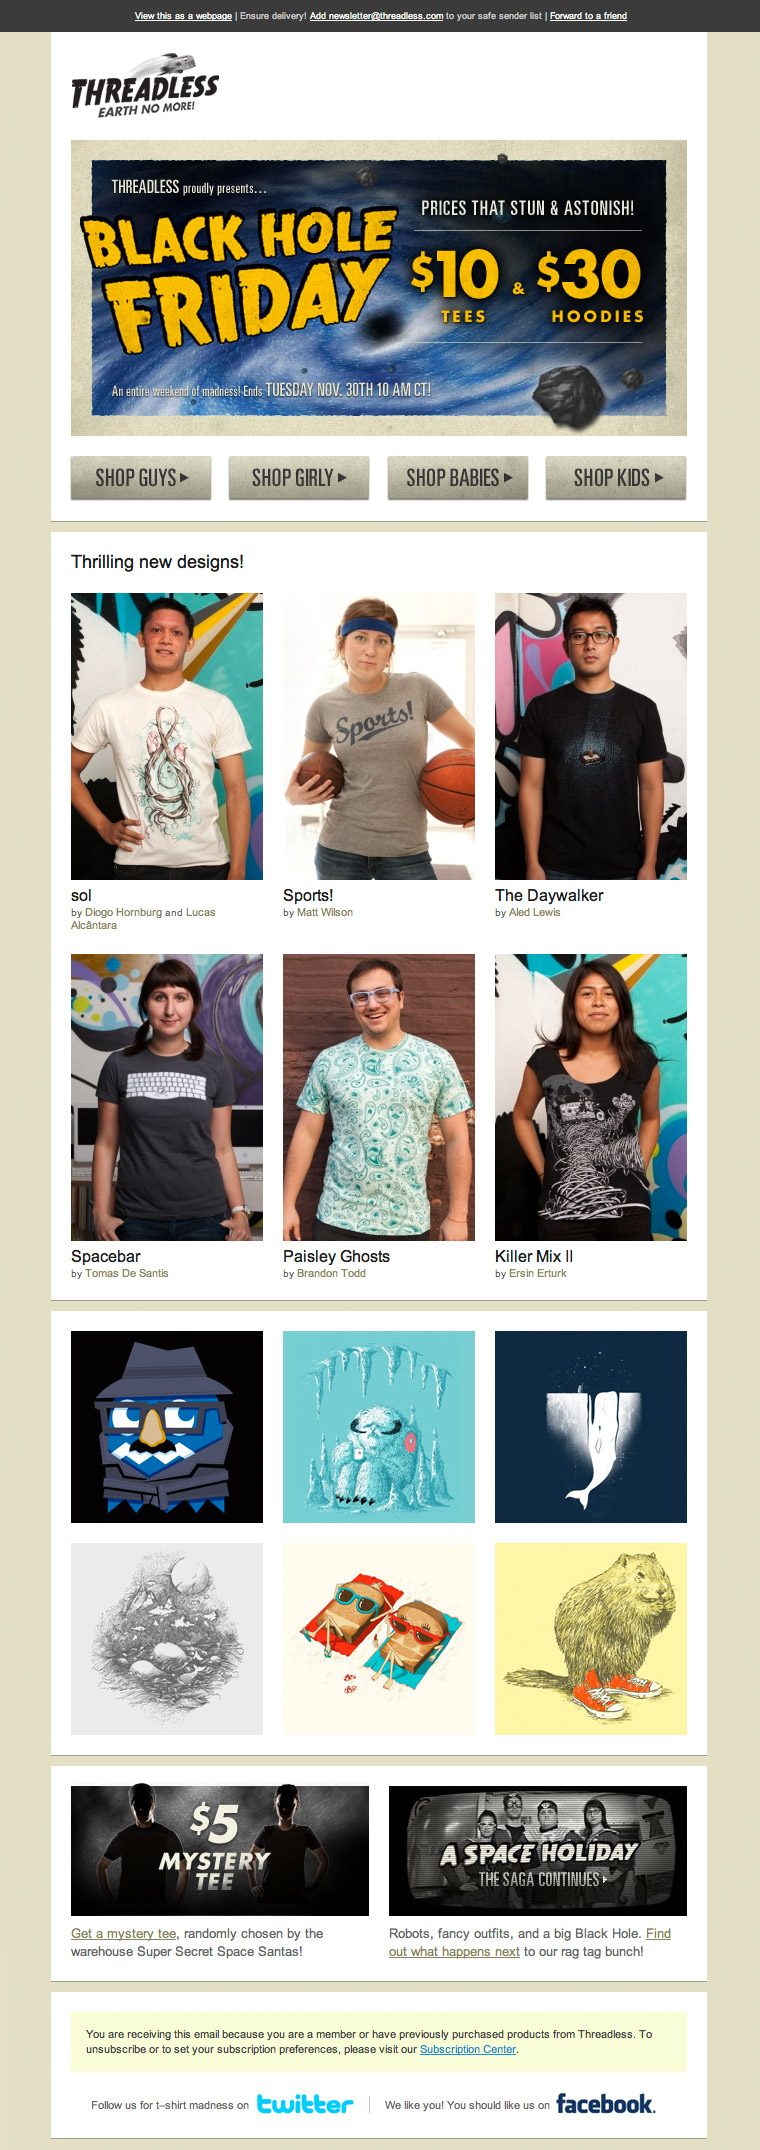 Threadless Black Hole Friday email